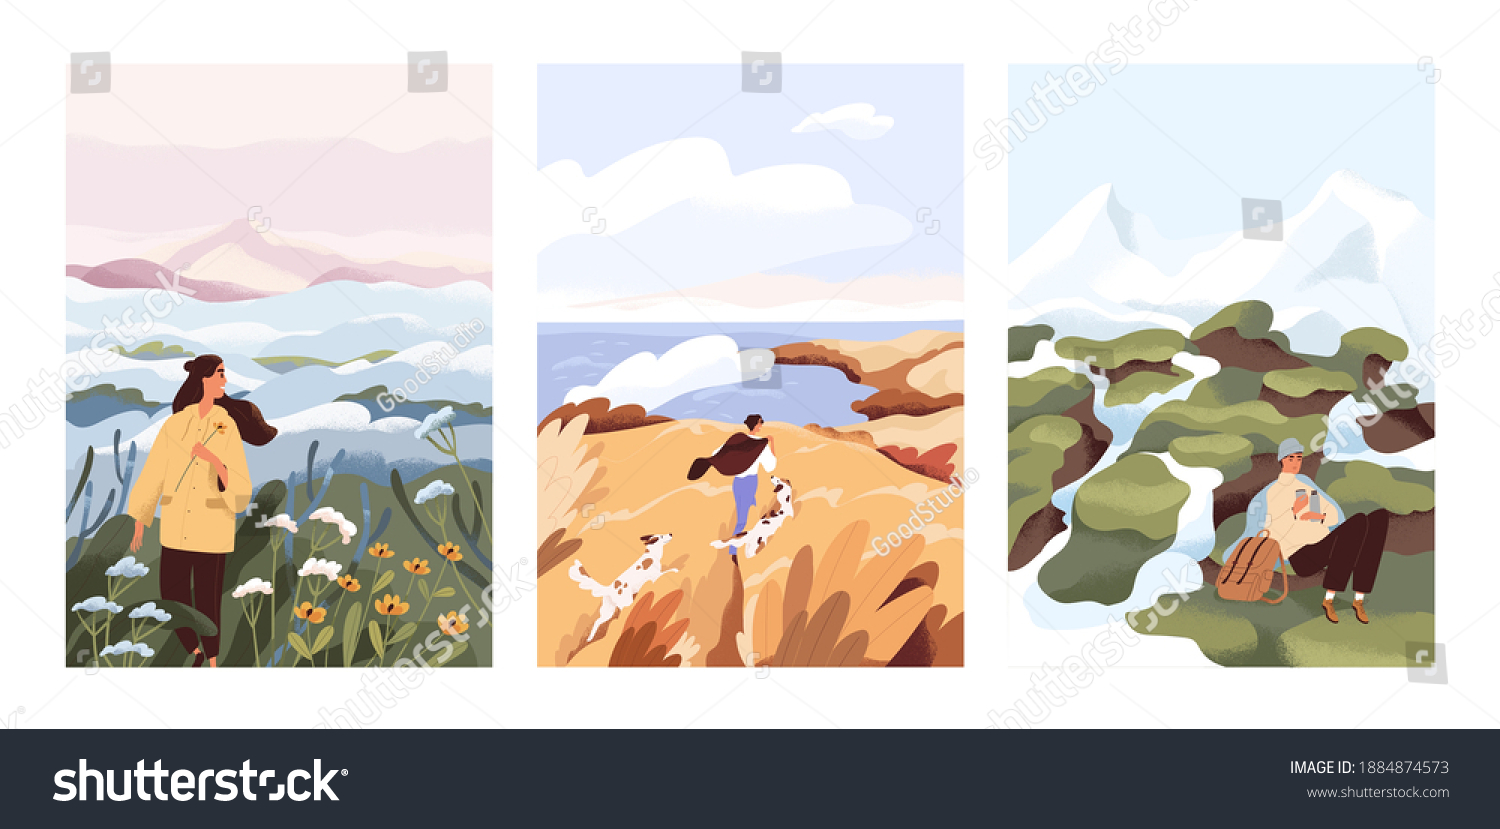 Man and woman relax outdoor at natural landscape vector flat illustration. Scenes with people walking alone, enjoy scenic nature views. Concept of freedom, relax and inspirational lifestyle #1884874573